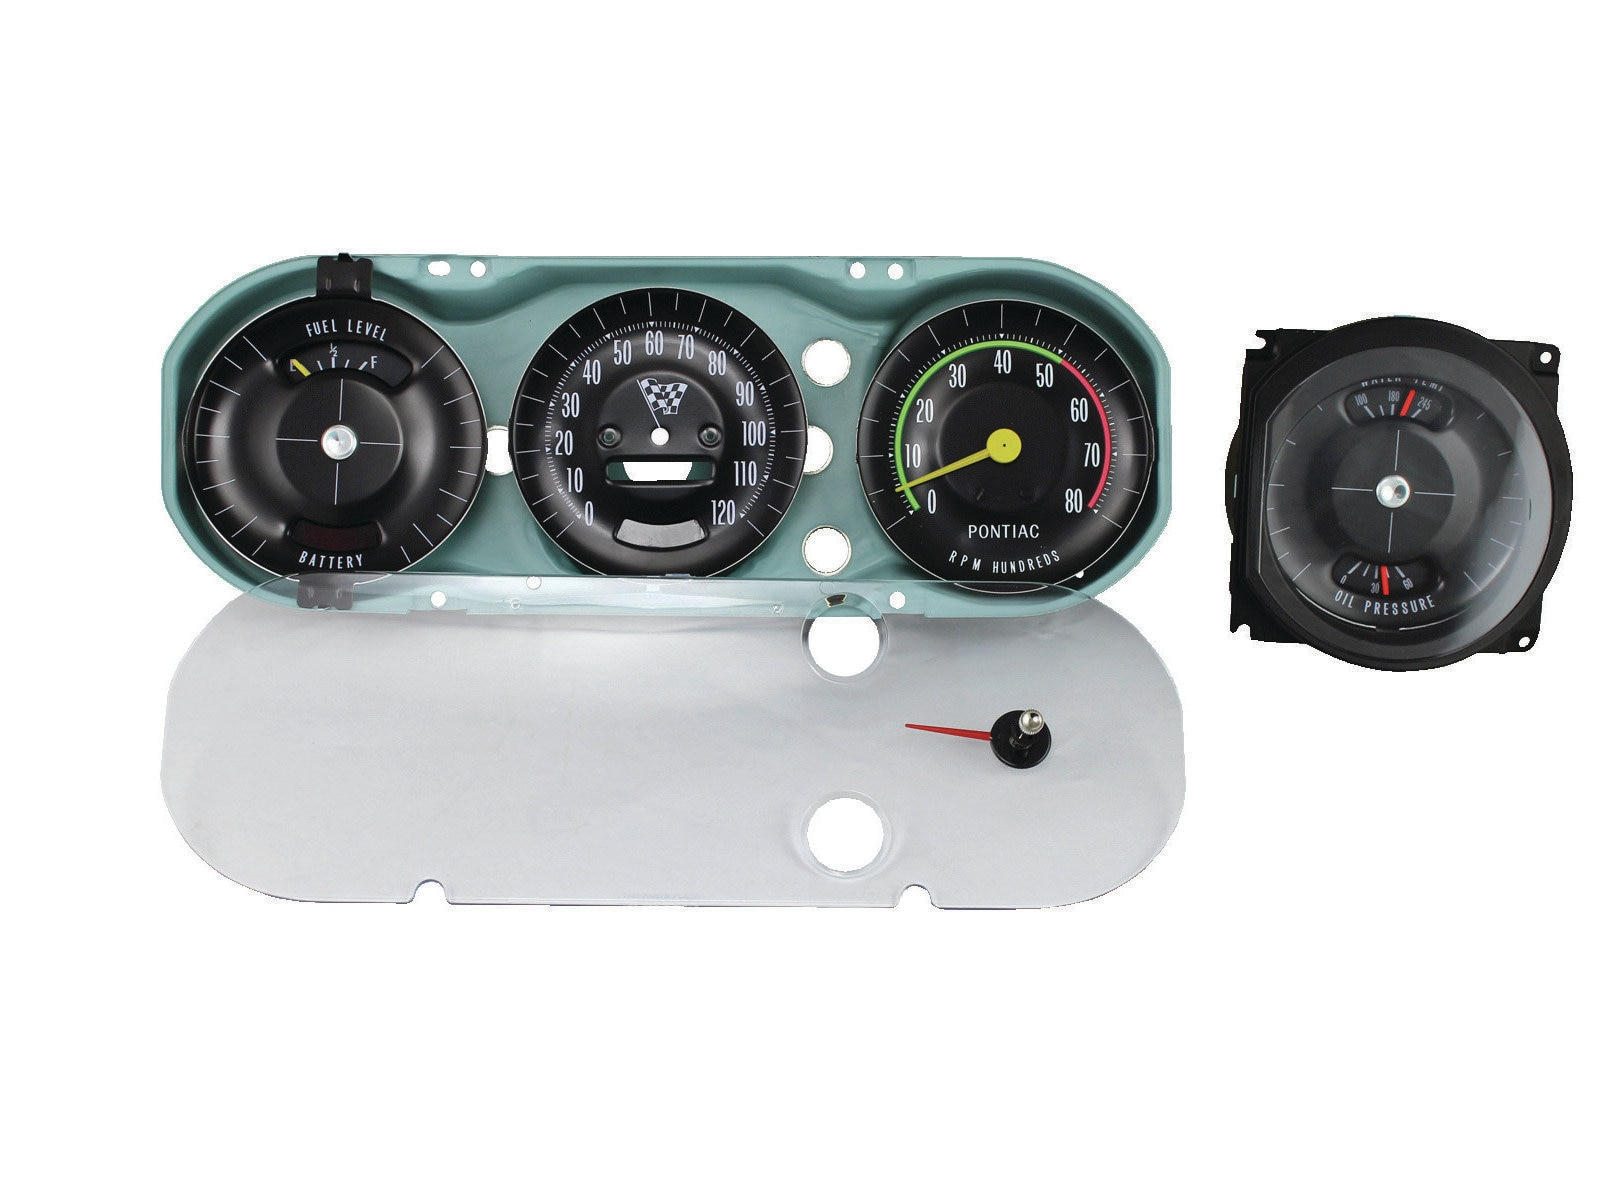 hight resolution of 1965 gto rally gauges wiring diagram diagram database reg mix 1965 gto rally gauges wiring diagram 1967